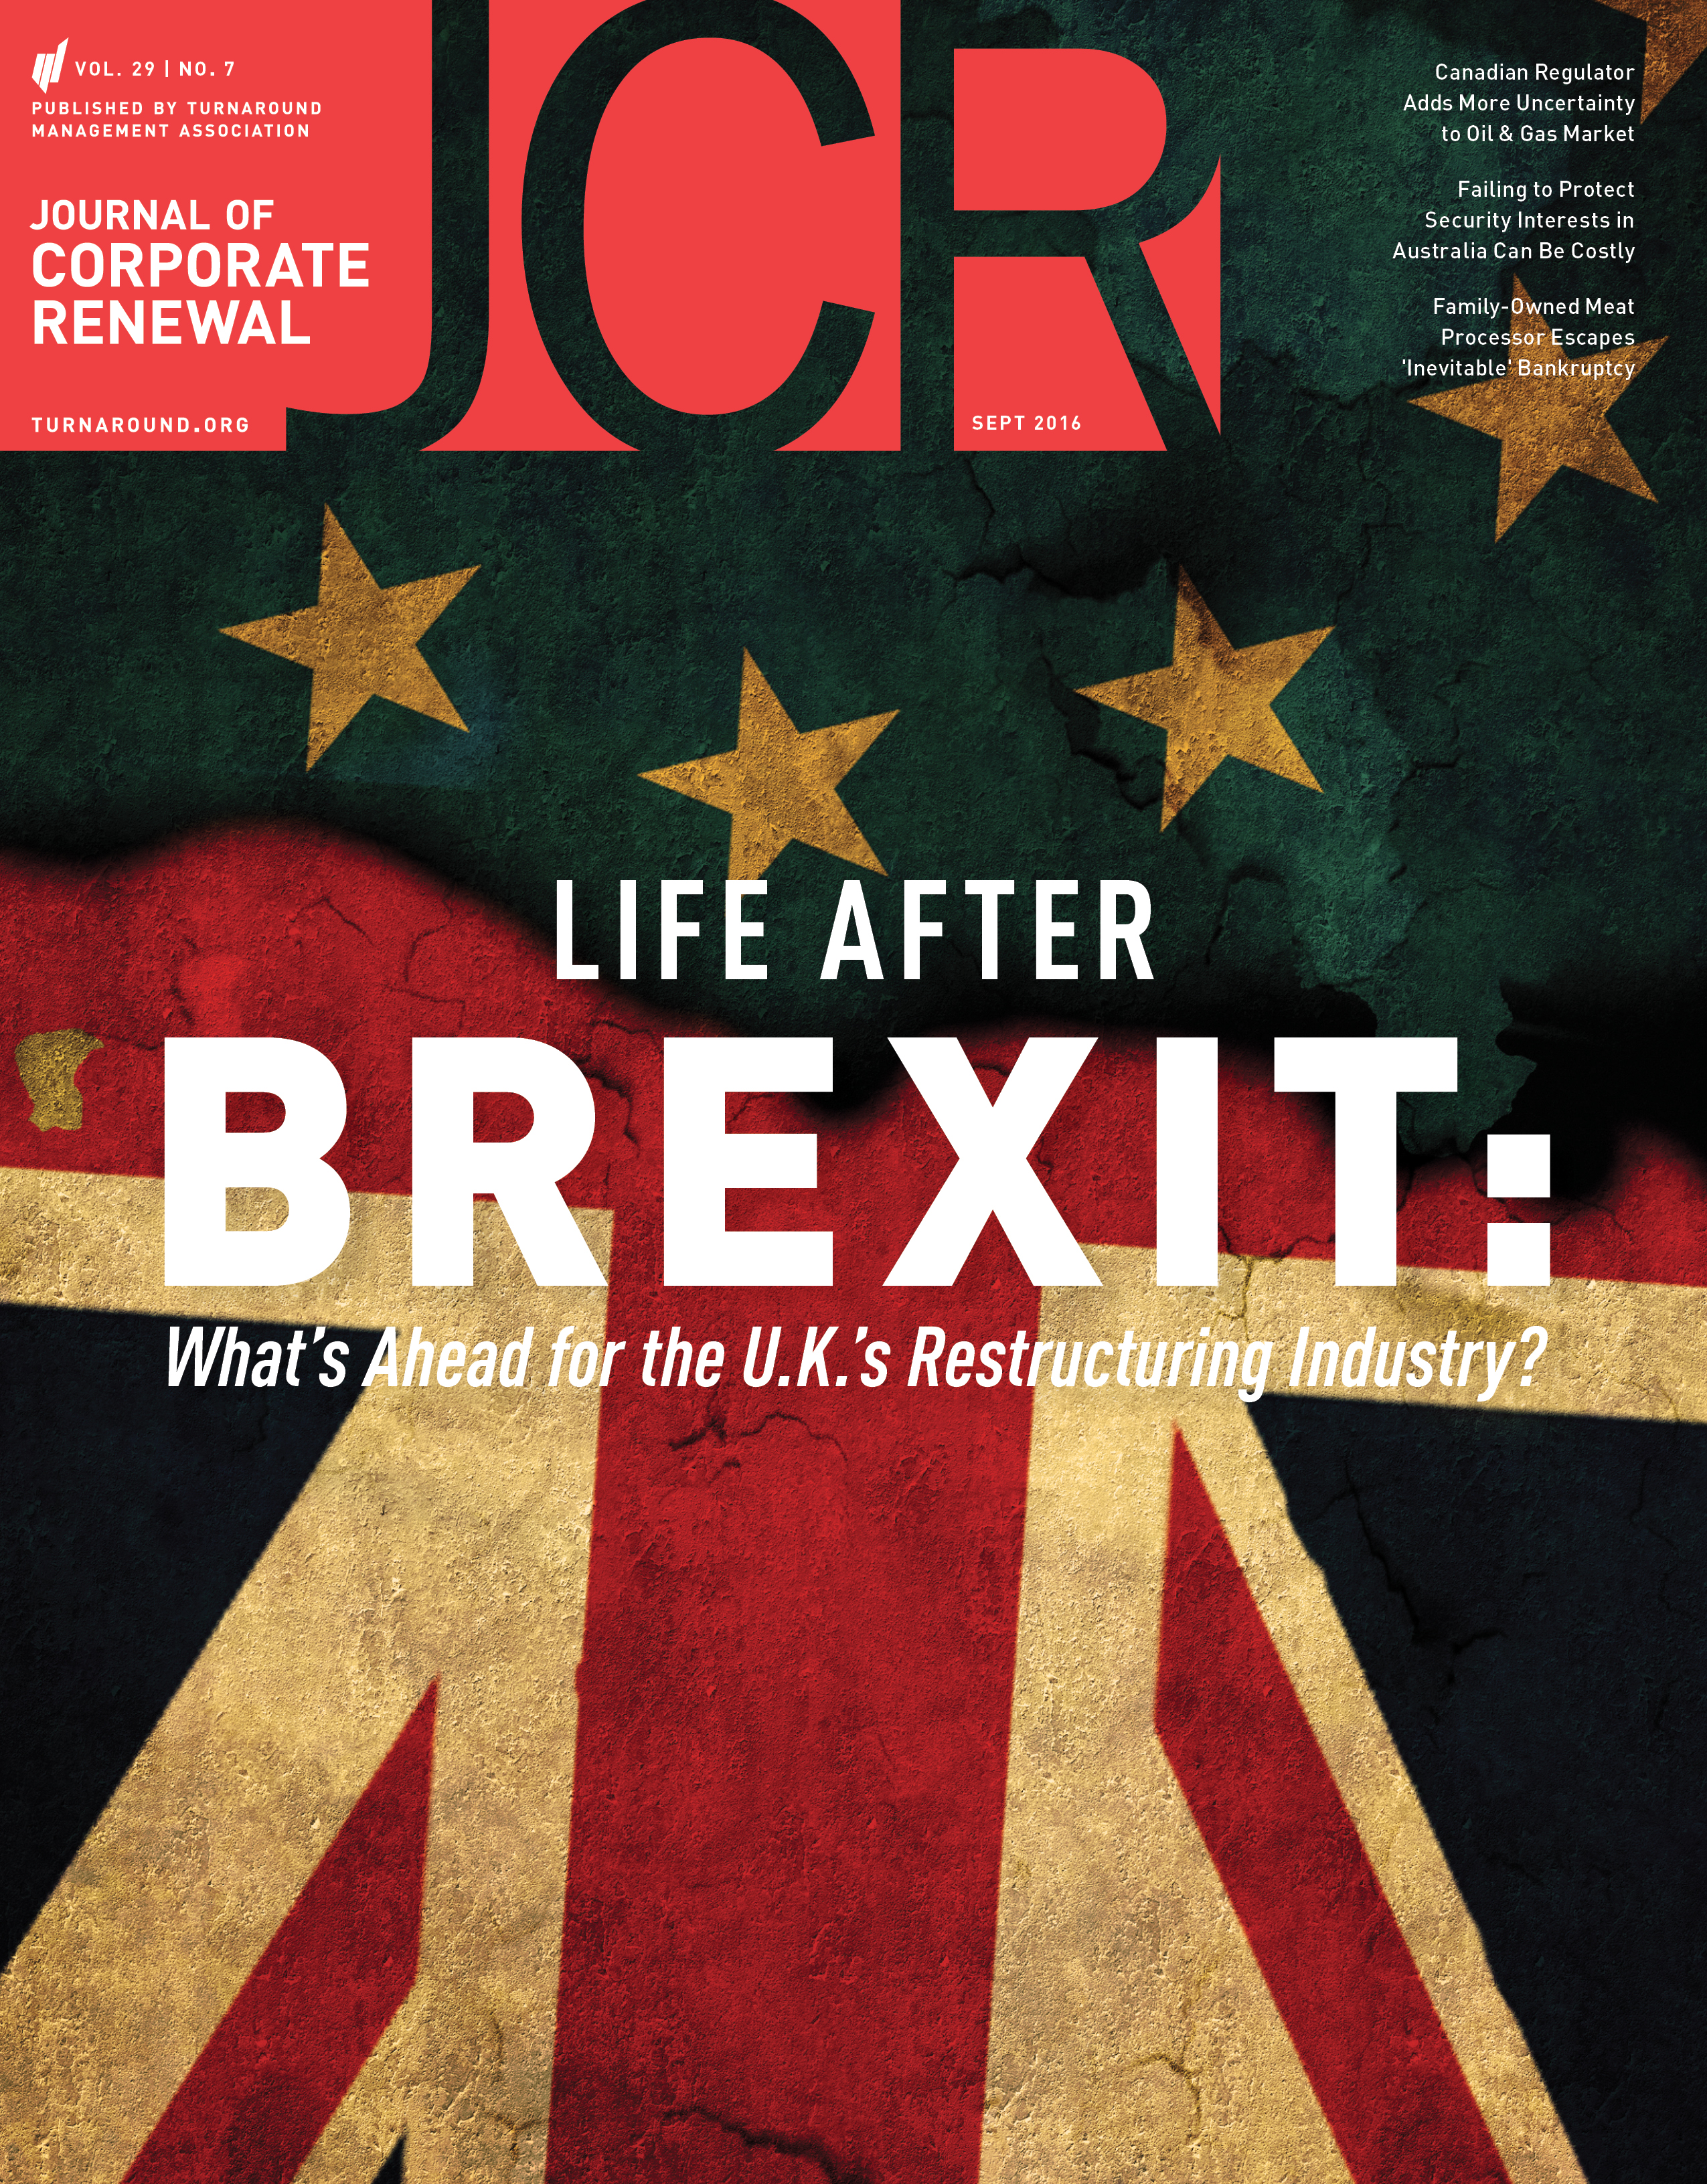 September 2016 JCR, Journal of Corporate Renewal